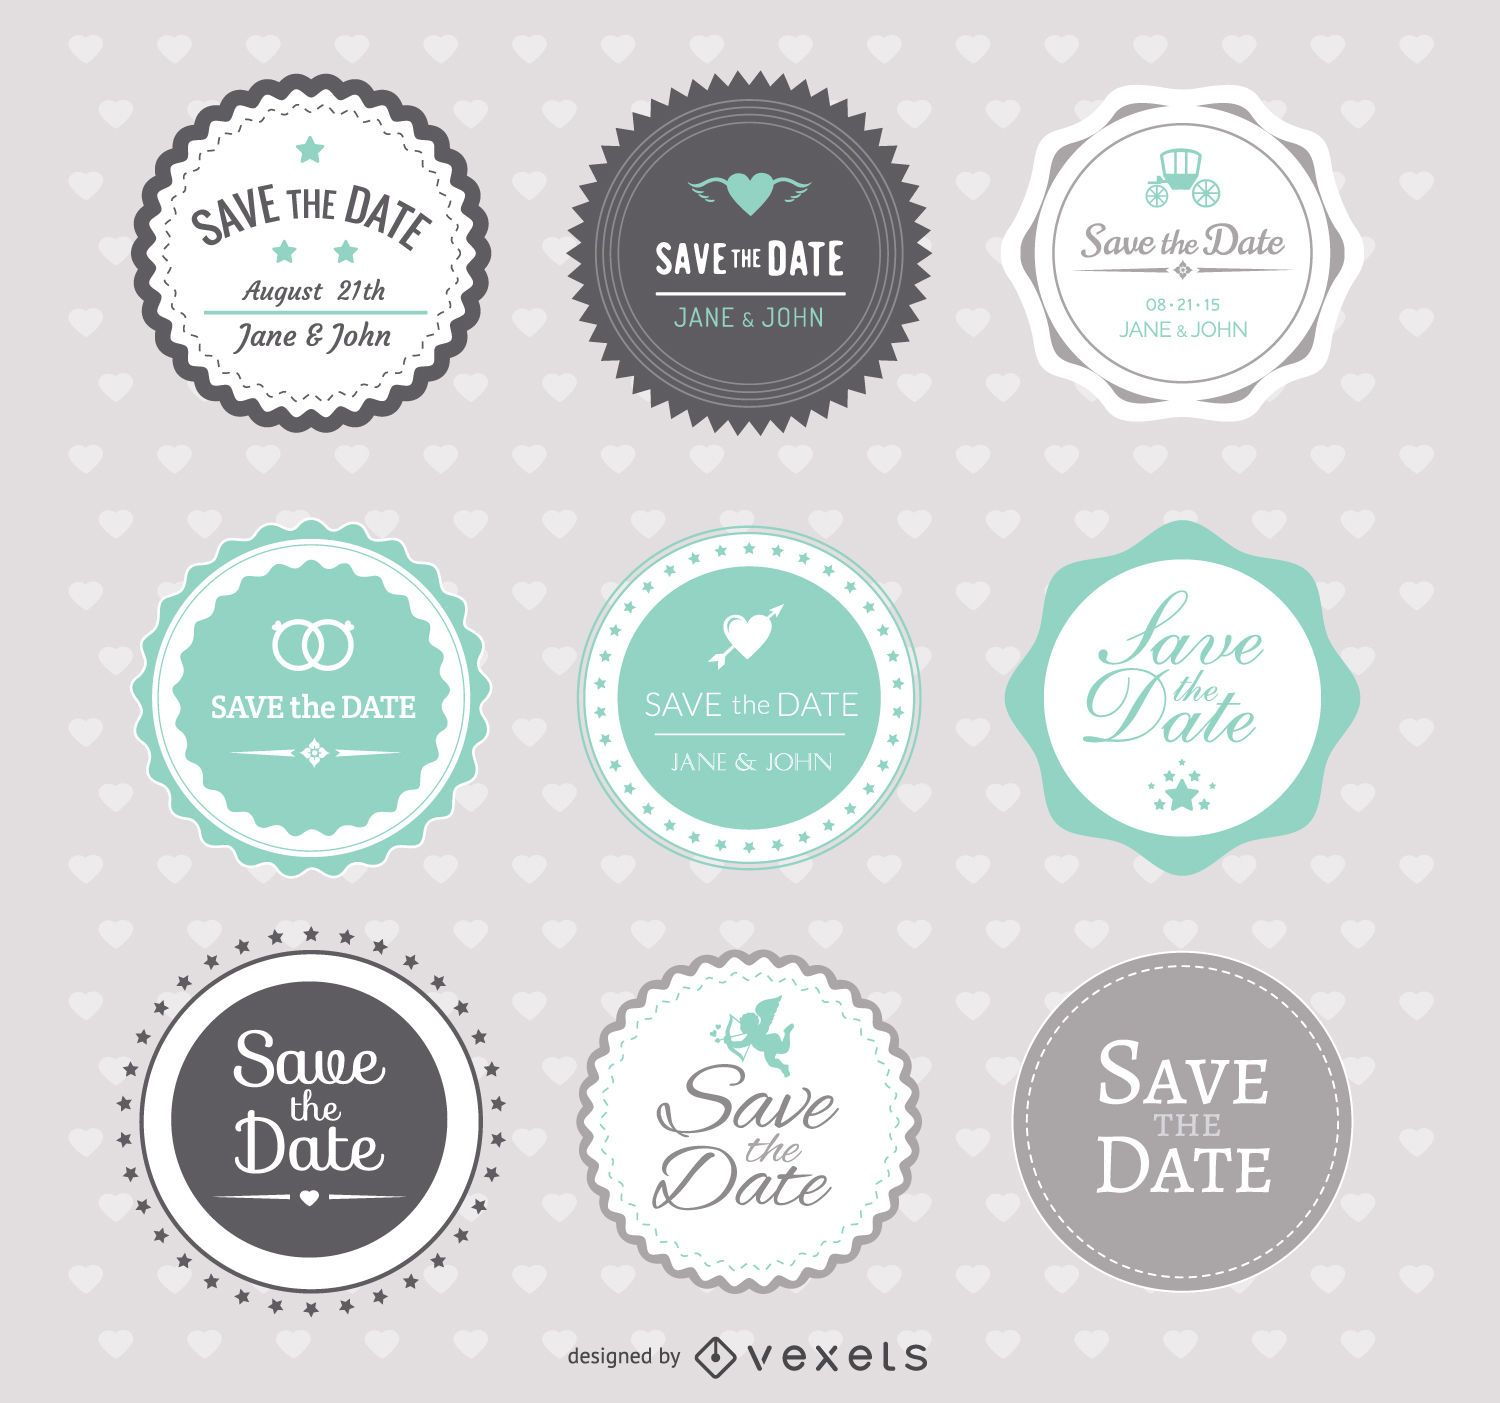 Save the date Wedding Badges - Vector download - free wedding save the dates